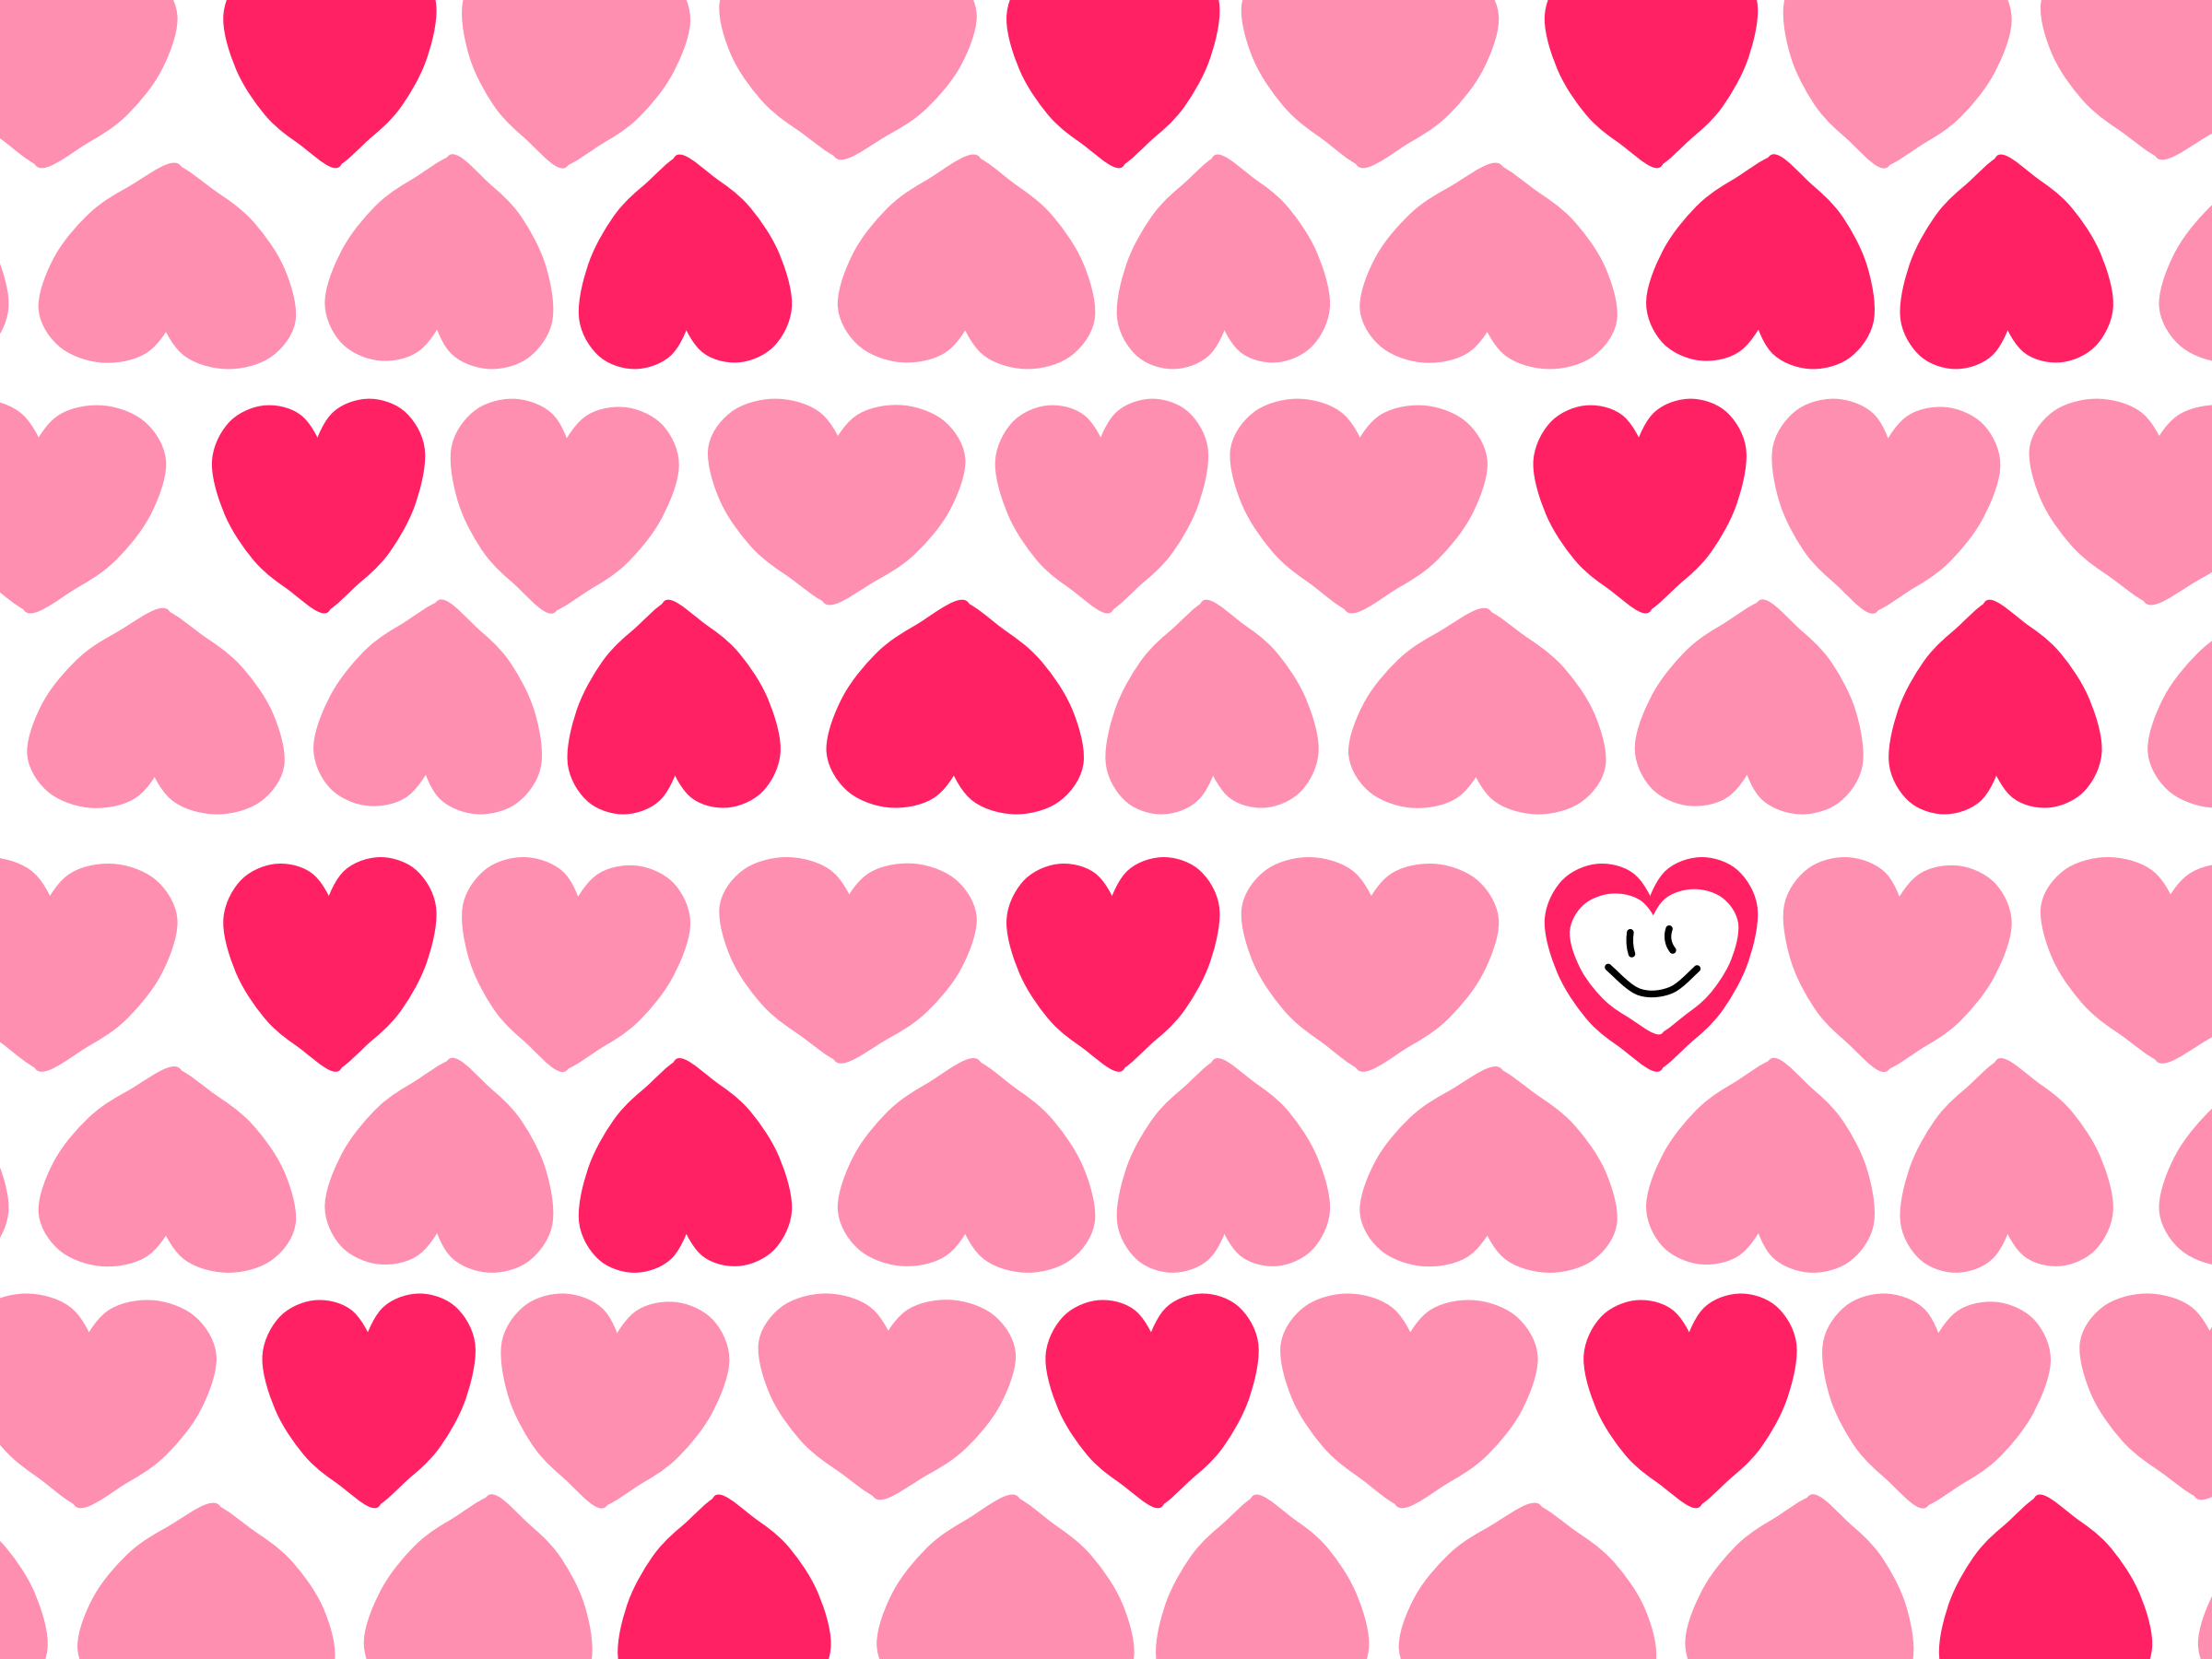 Pattern heart clipart graphic stock Clipart - Heart Pattern graphic stock